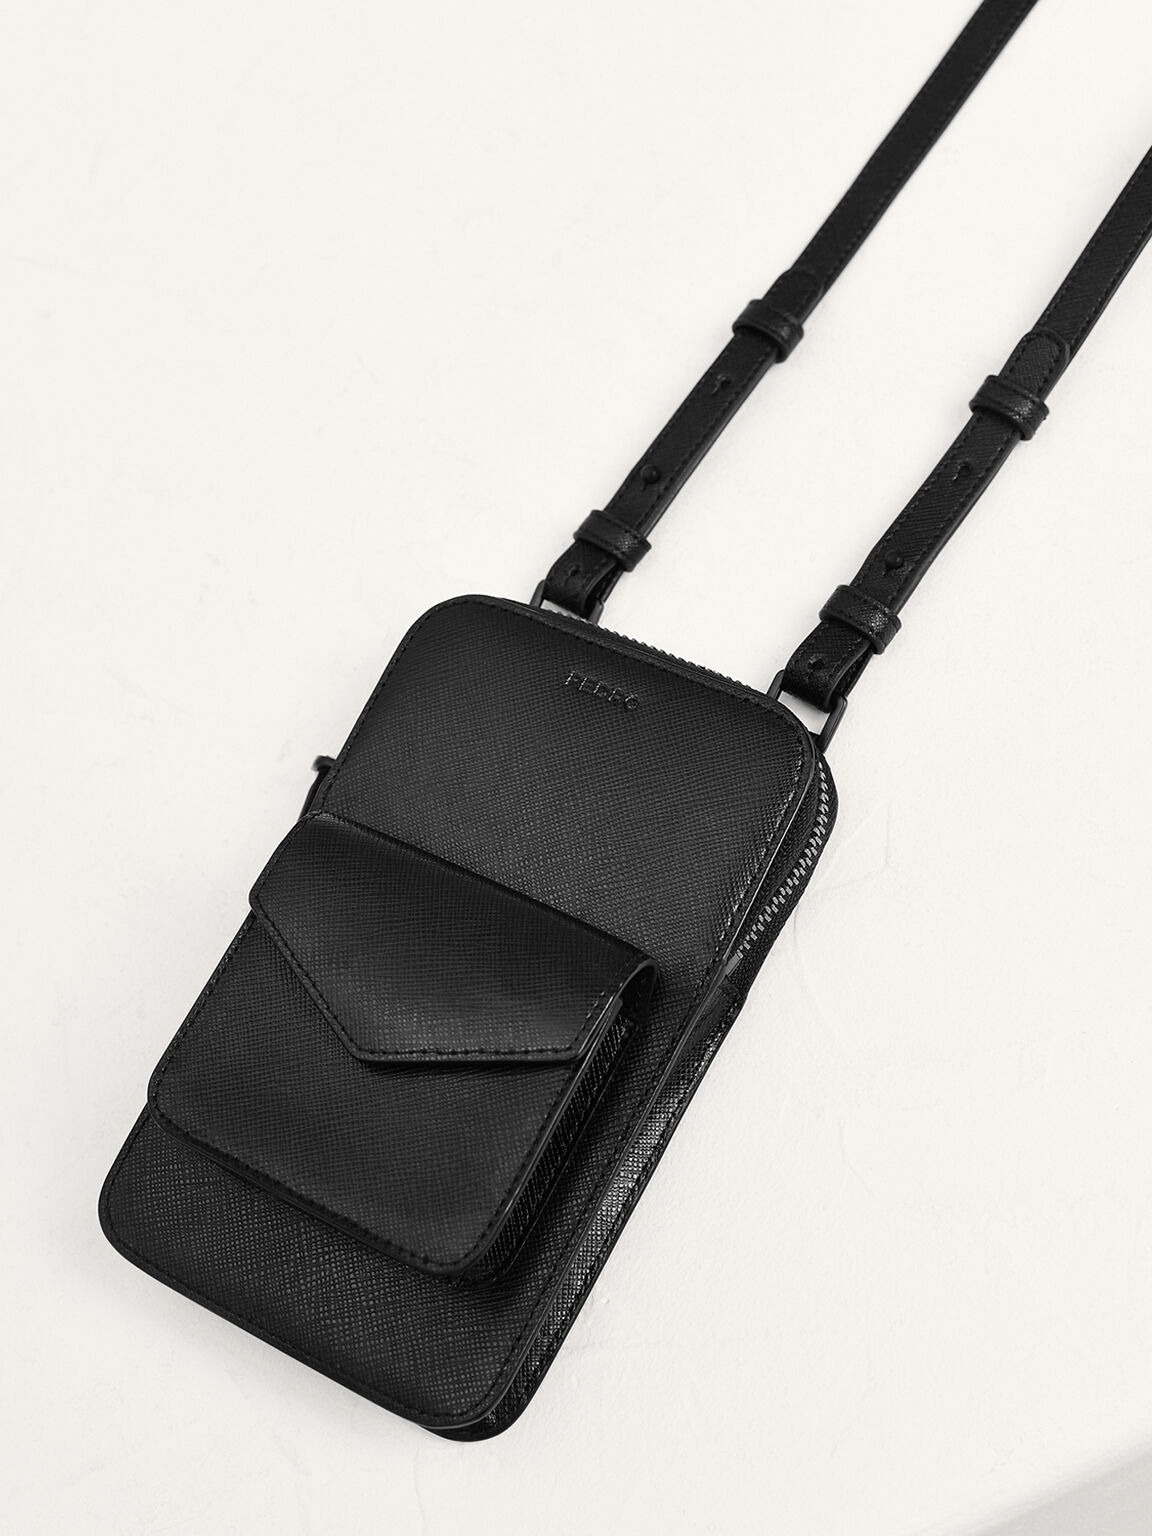 Embossed Leather Phone Pouch, Black, hi-res